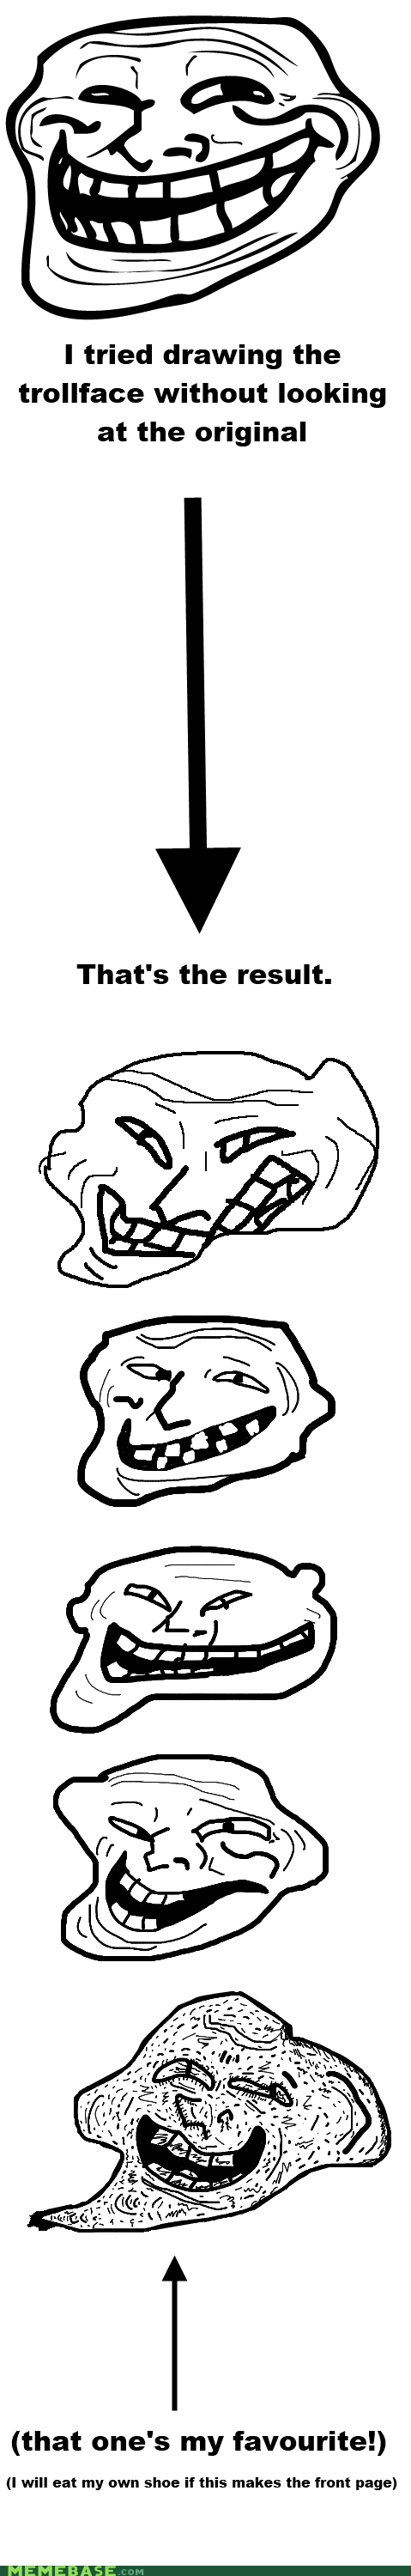 blind,drawing,EAT YOUR SHOE,mods insist,shoes,troll face,ugly